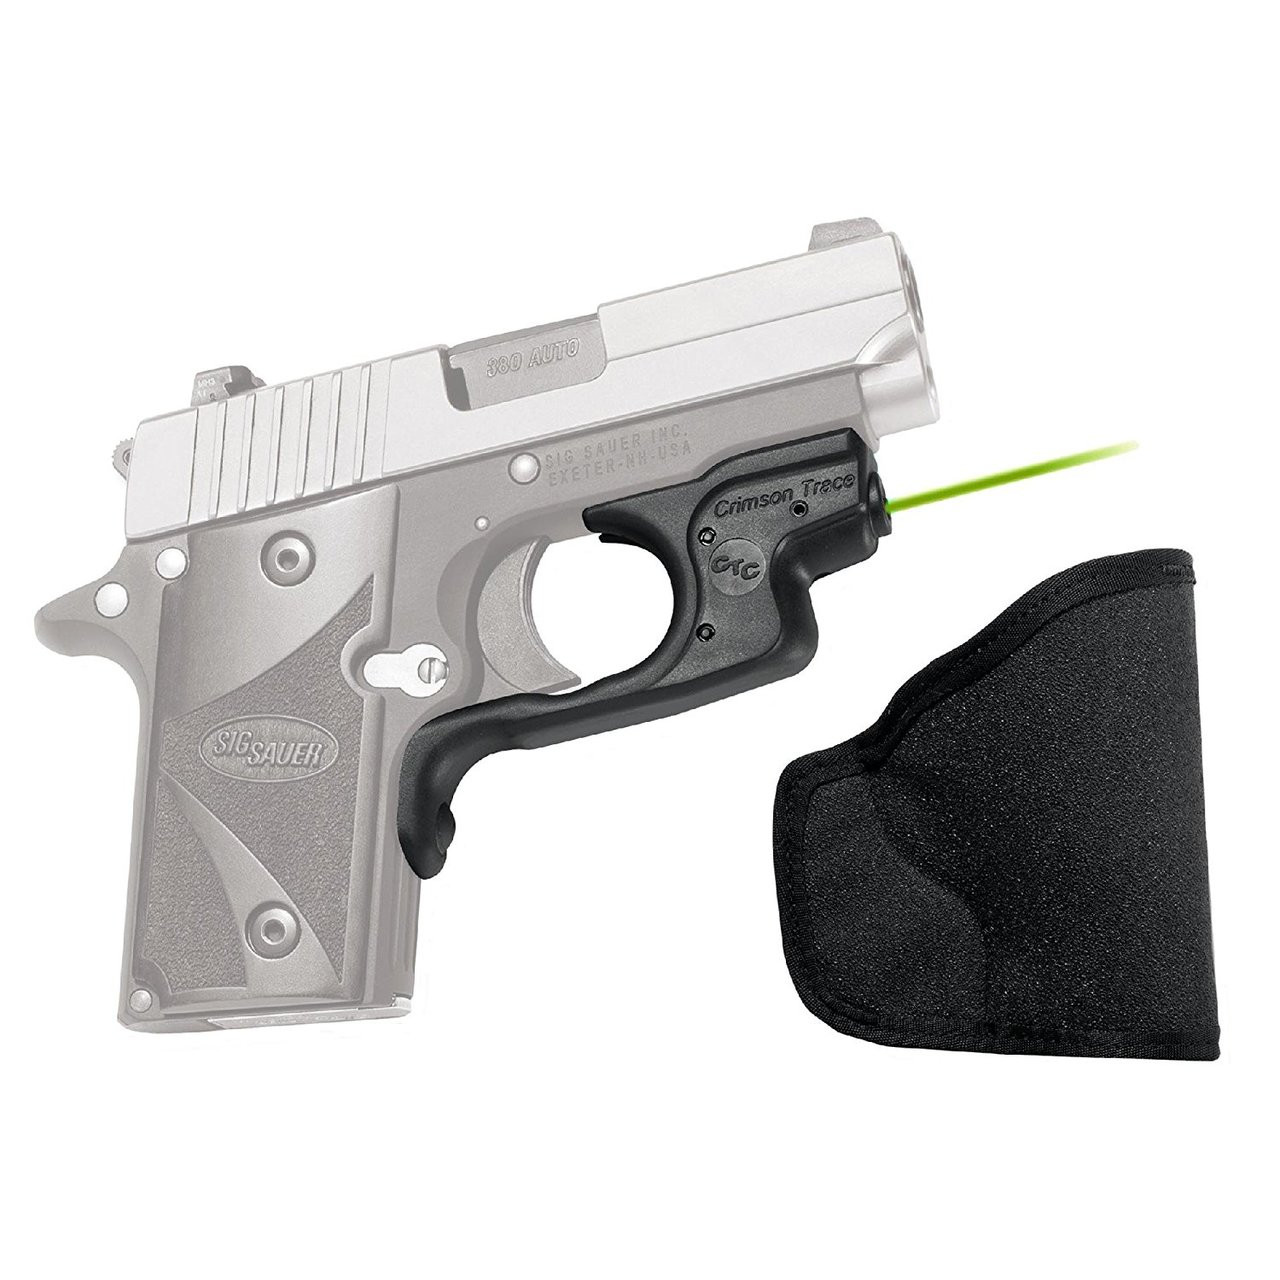 CRIMSON TRACE Green Laserguard with Pocket Holster for Sig Sauer P238 and  P938 (LG-492G-H)